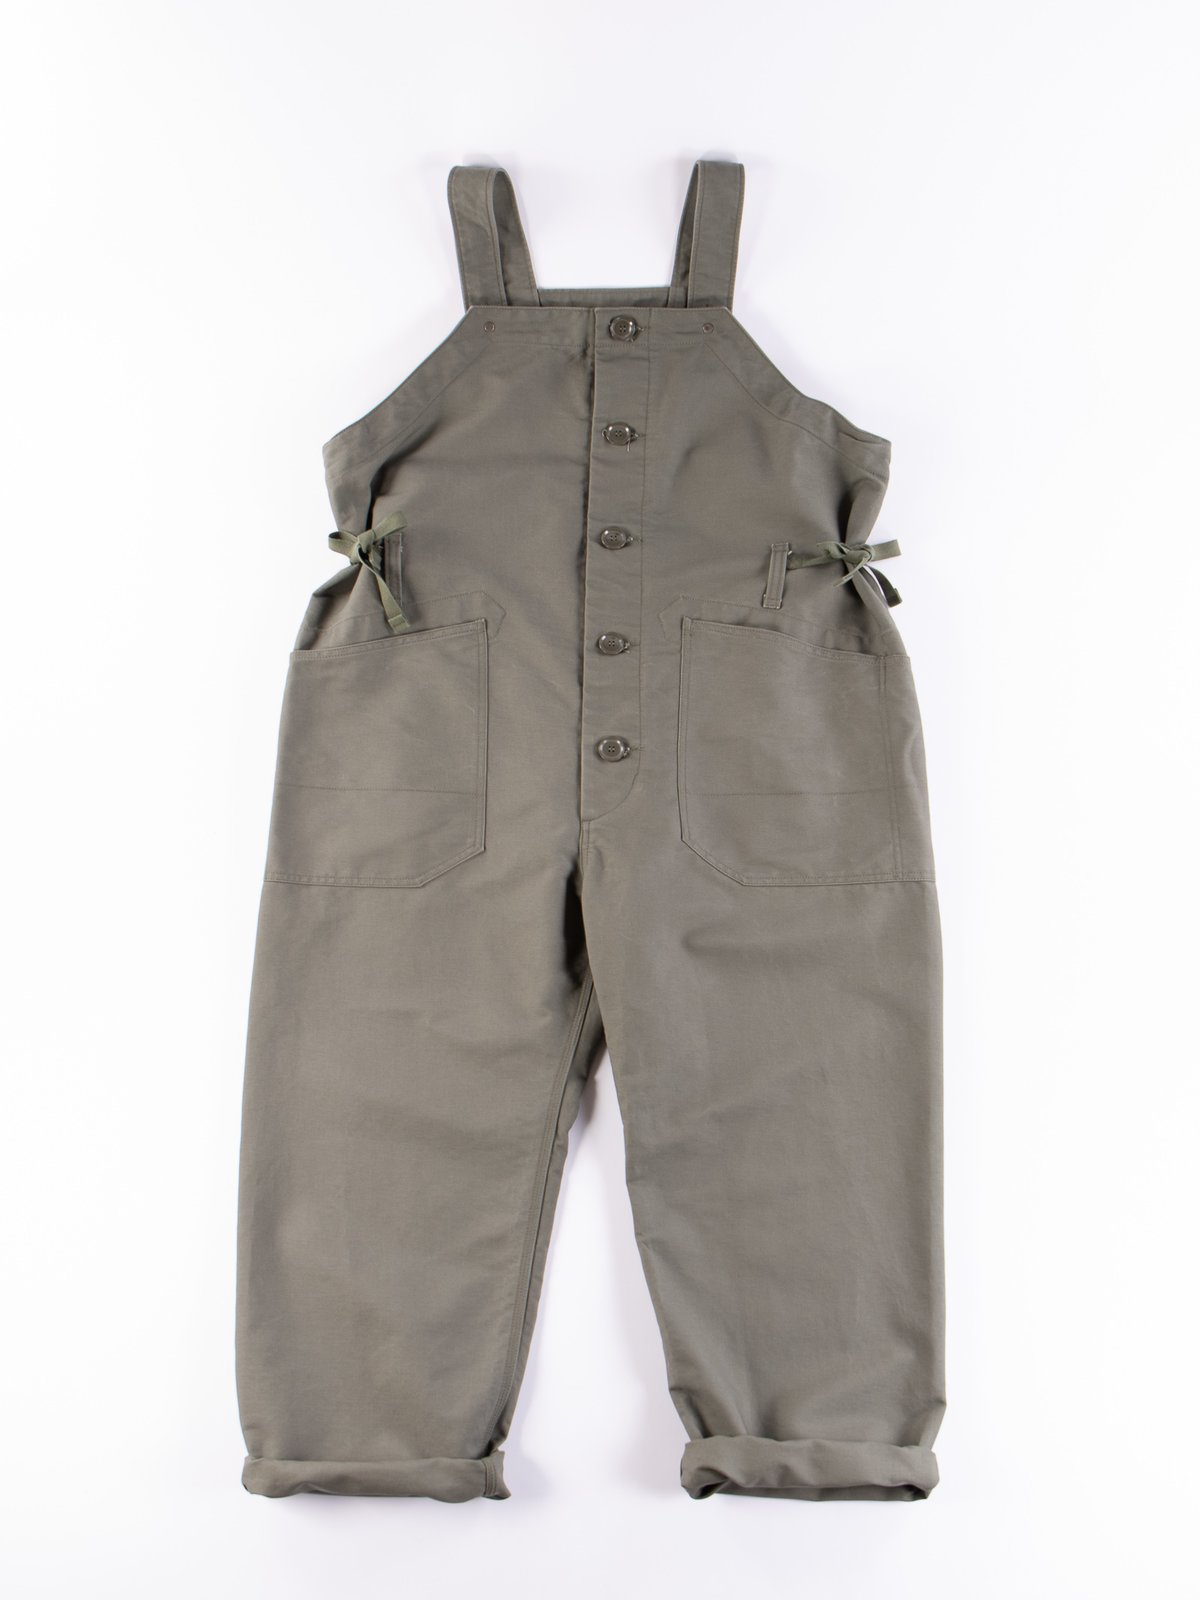 Olive Cotton Double Cloth Waders - Image 1